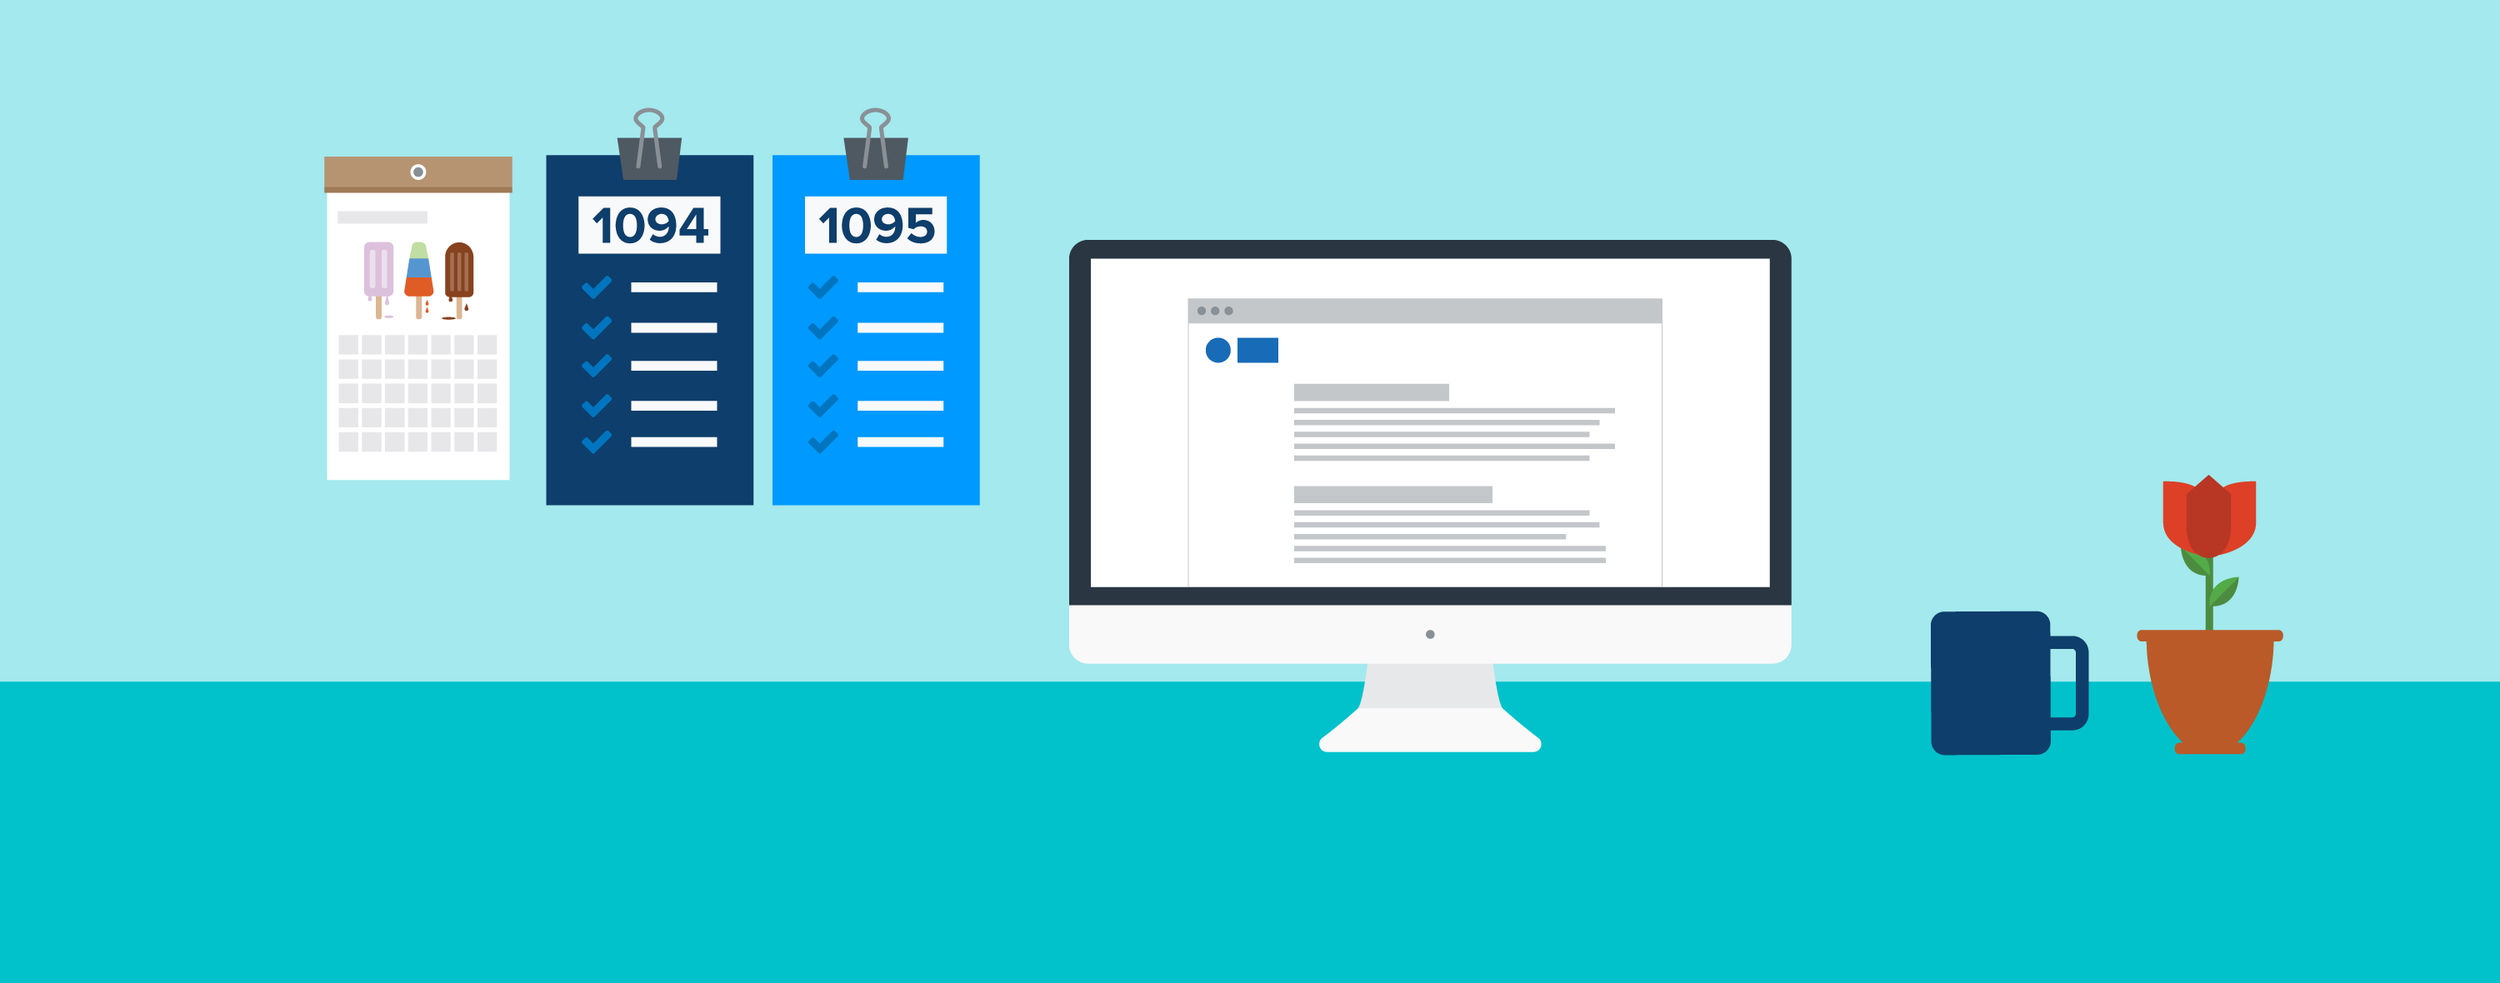 Your complete guide to aca forms 1094 c and 1095 c namely blog your complete guide to aca forms 1094 c and 1095 c falaconquin